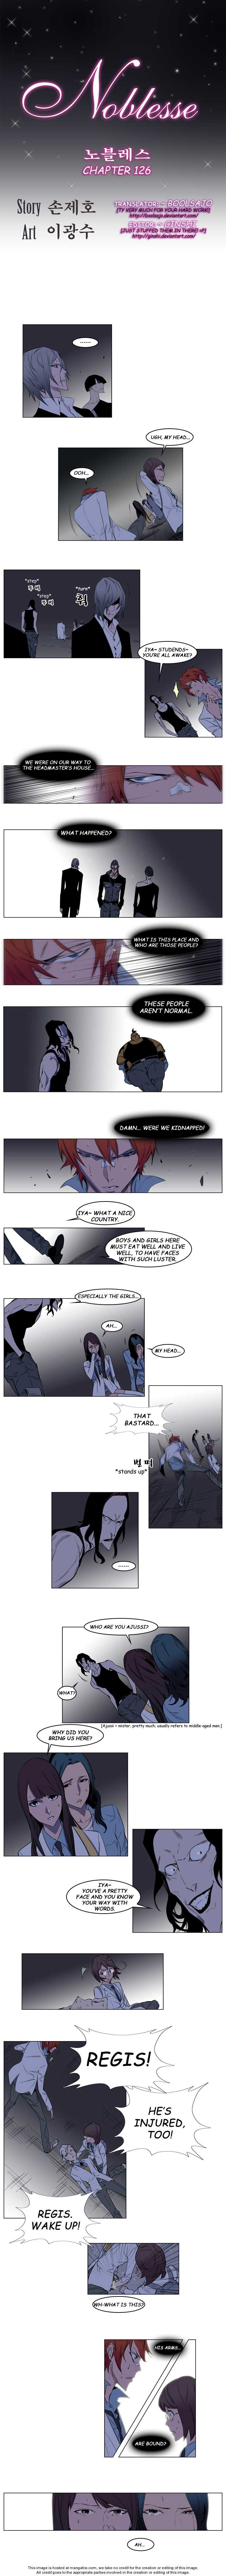 Noblesse 126 Page 1